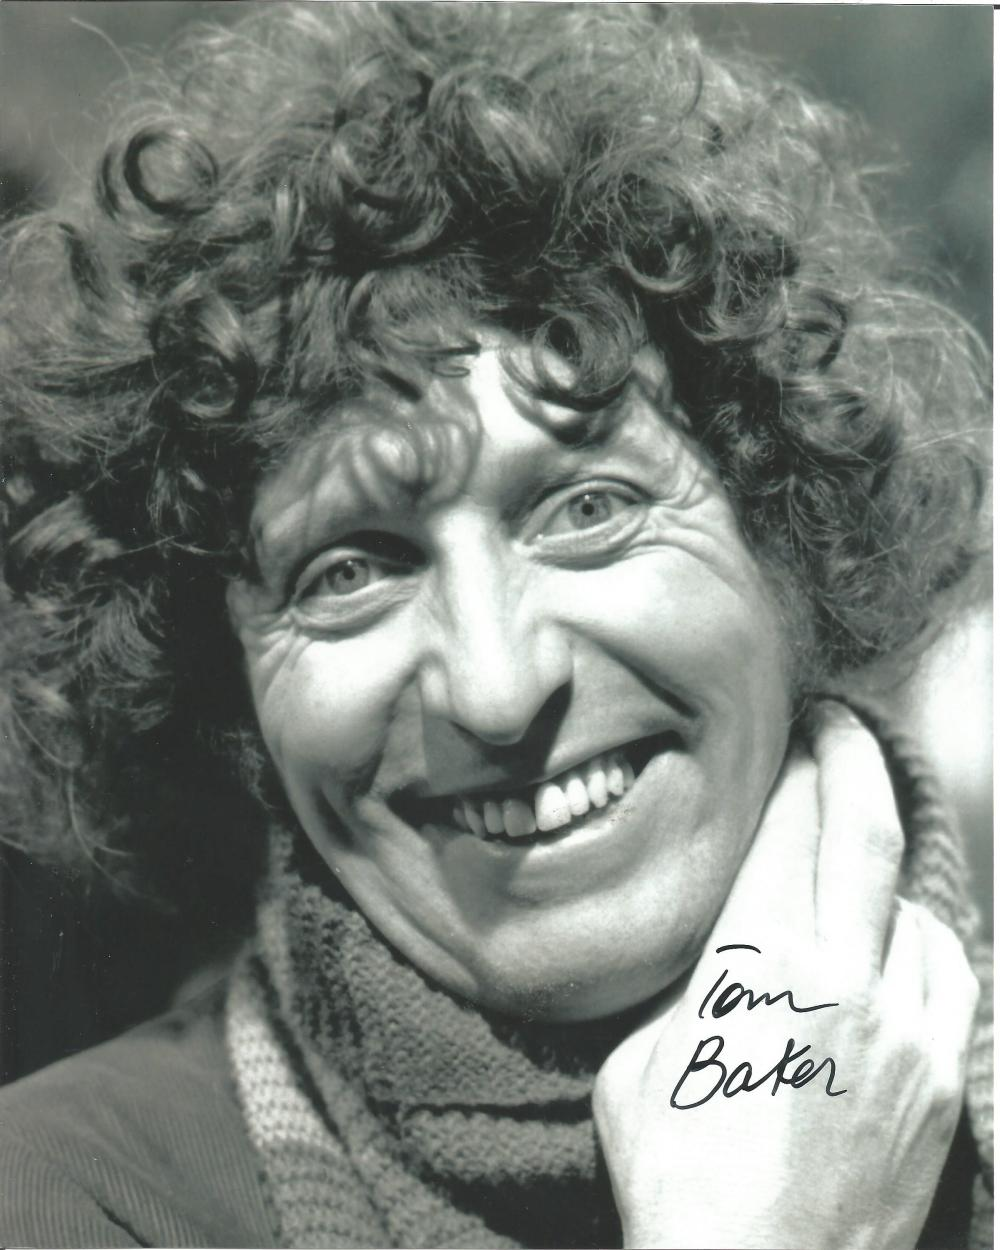 Tom Baker Dr. Who hand signed 10x8 photo. This beautiful hand signed photo depicts Tom Baker as